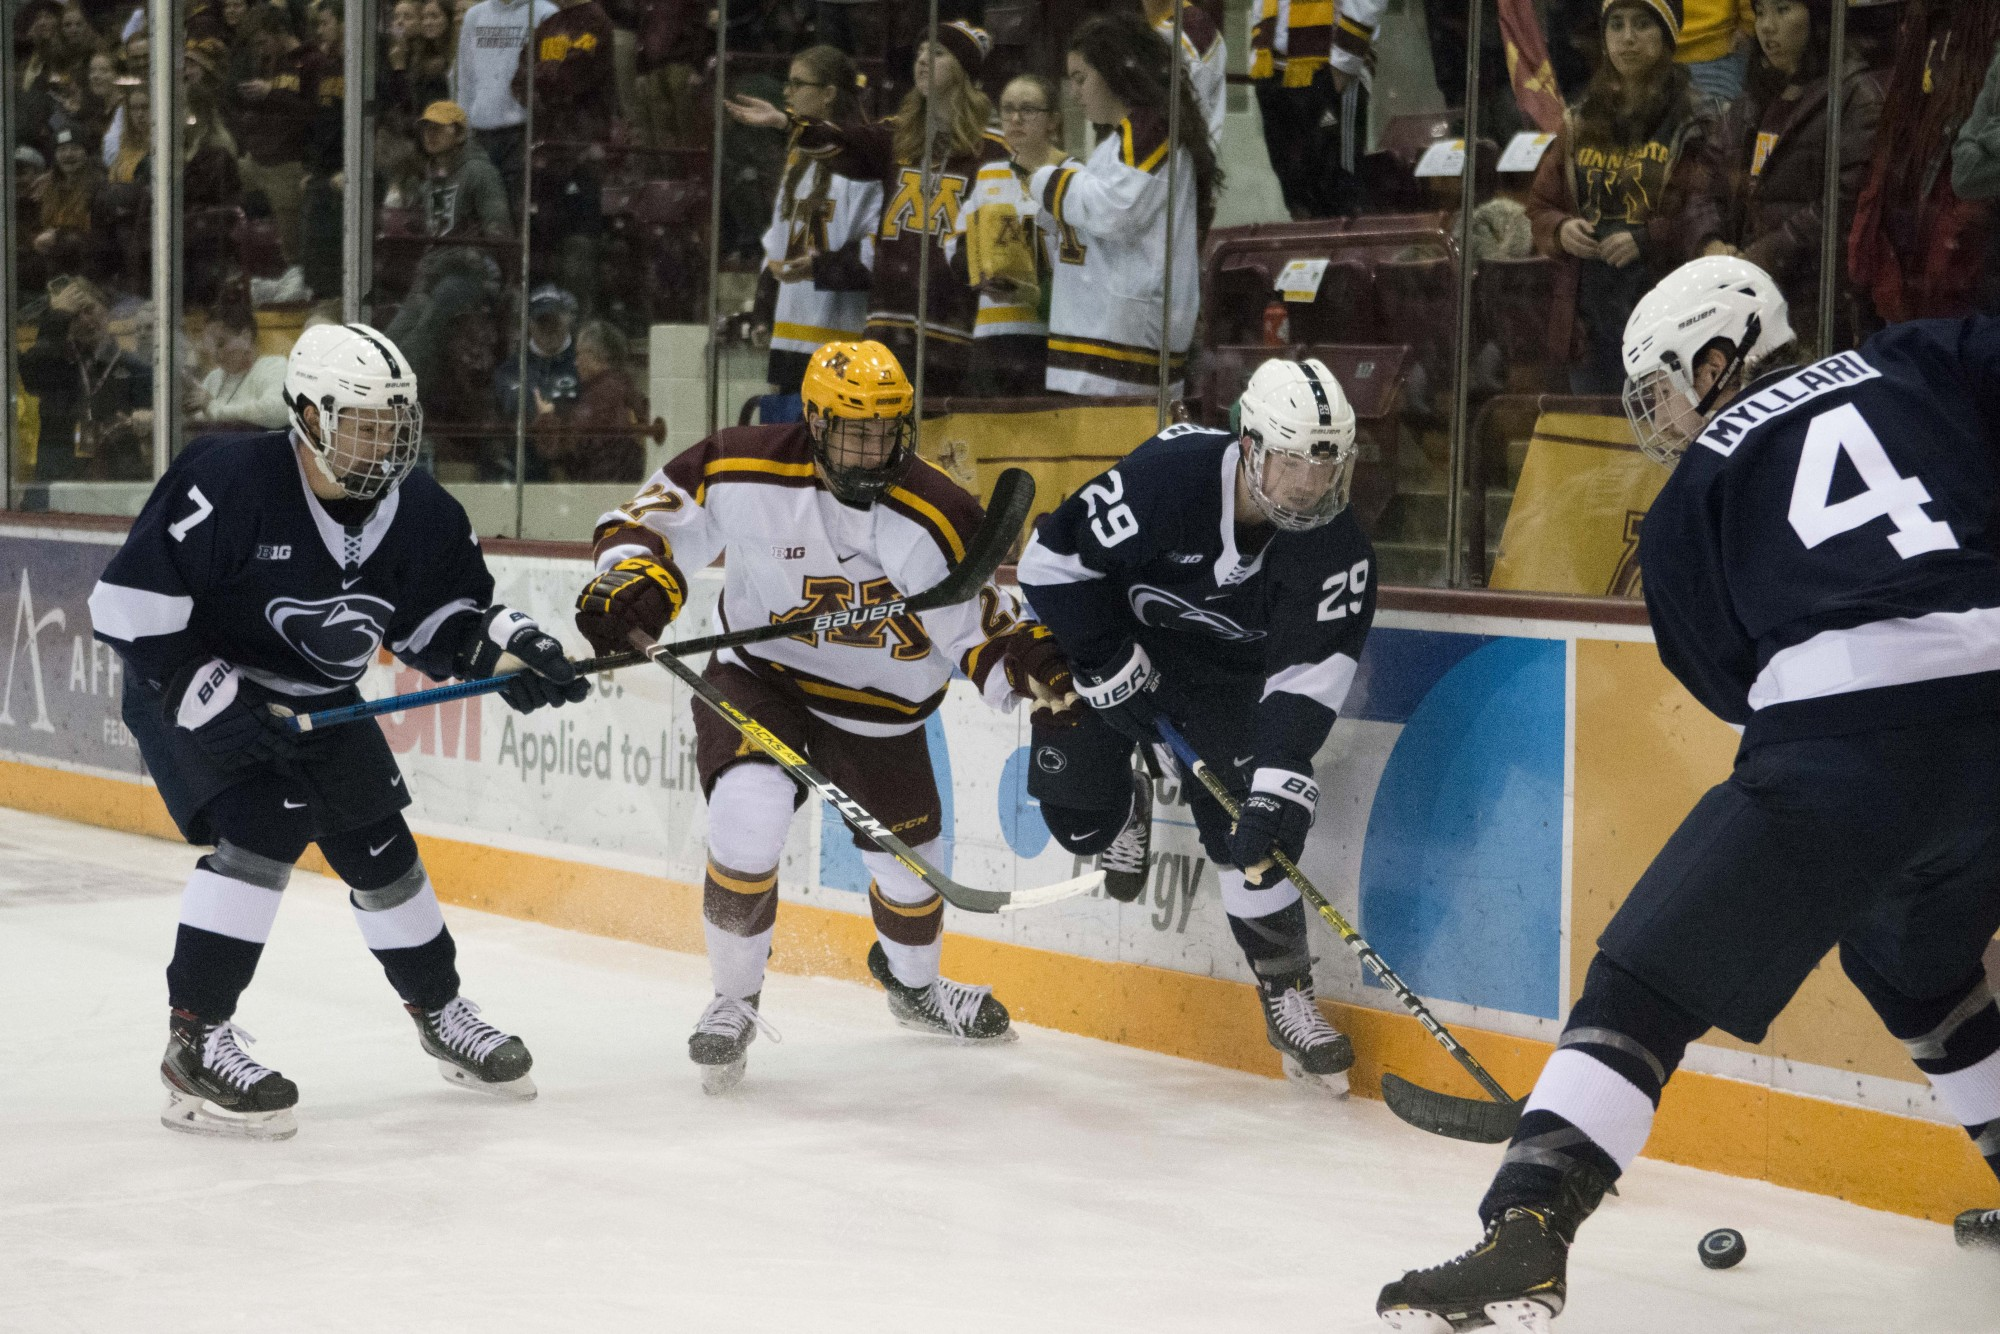 Forward Blake McLaughlin chases after the puck during the game against the Penn State at 3M Arena at Mariucci on Friday, Nov. 15.